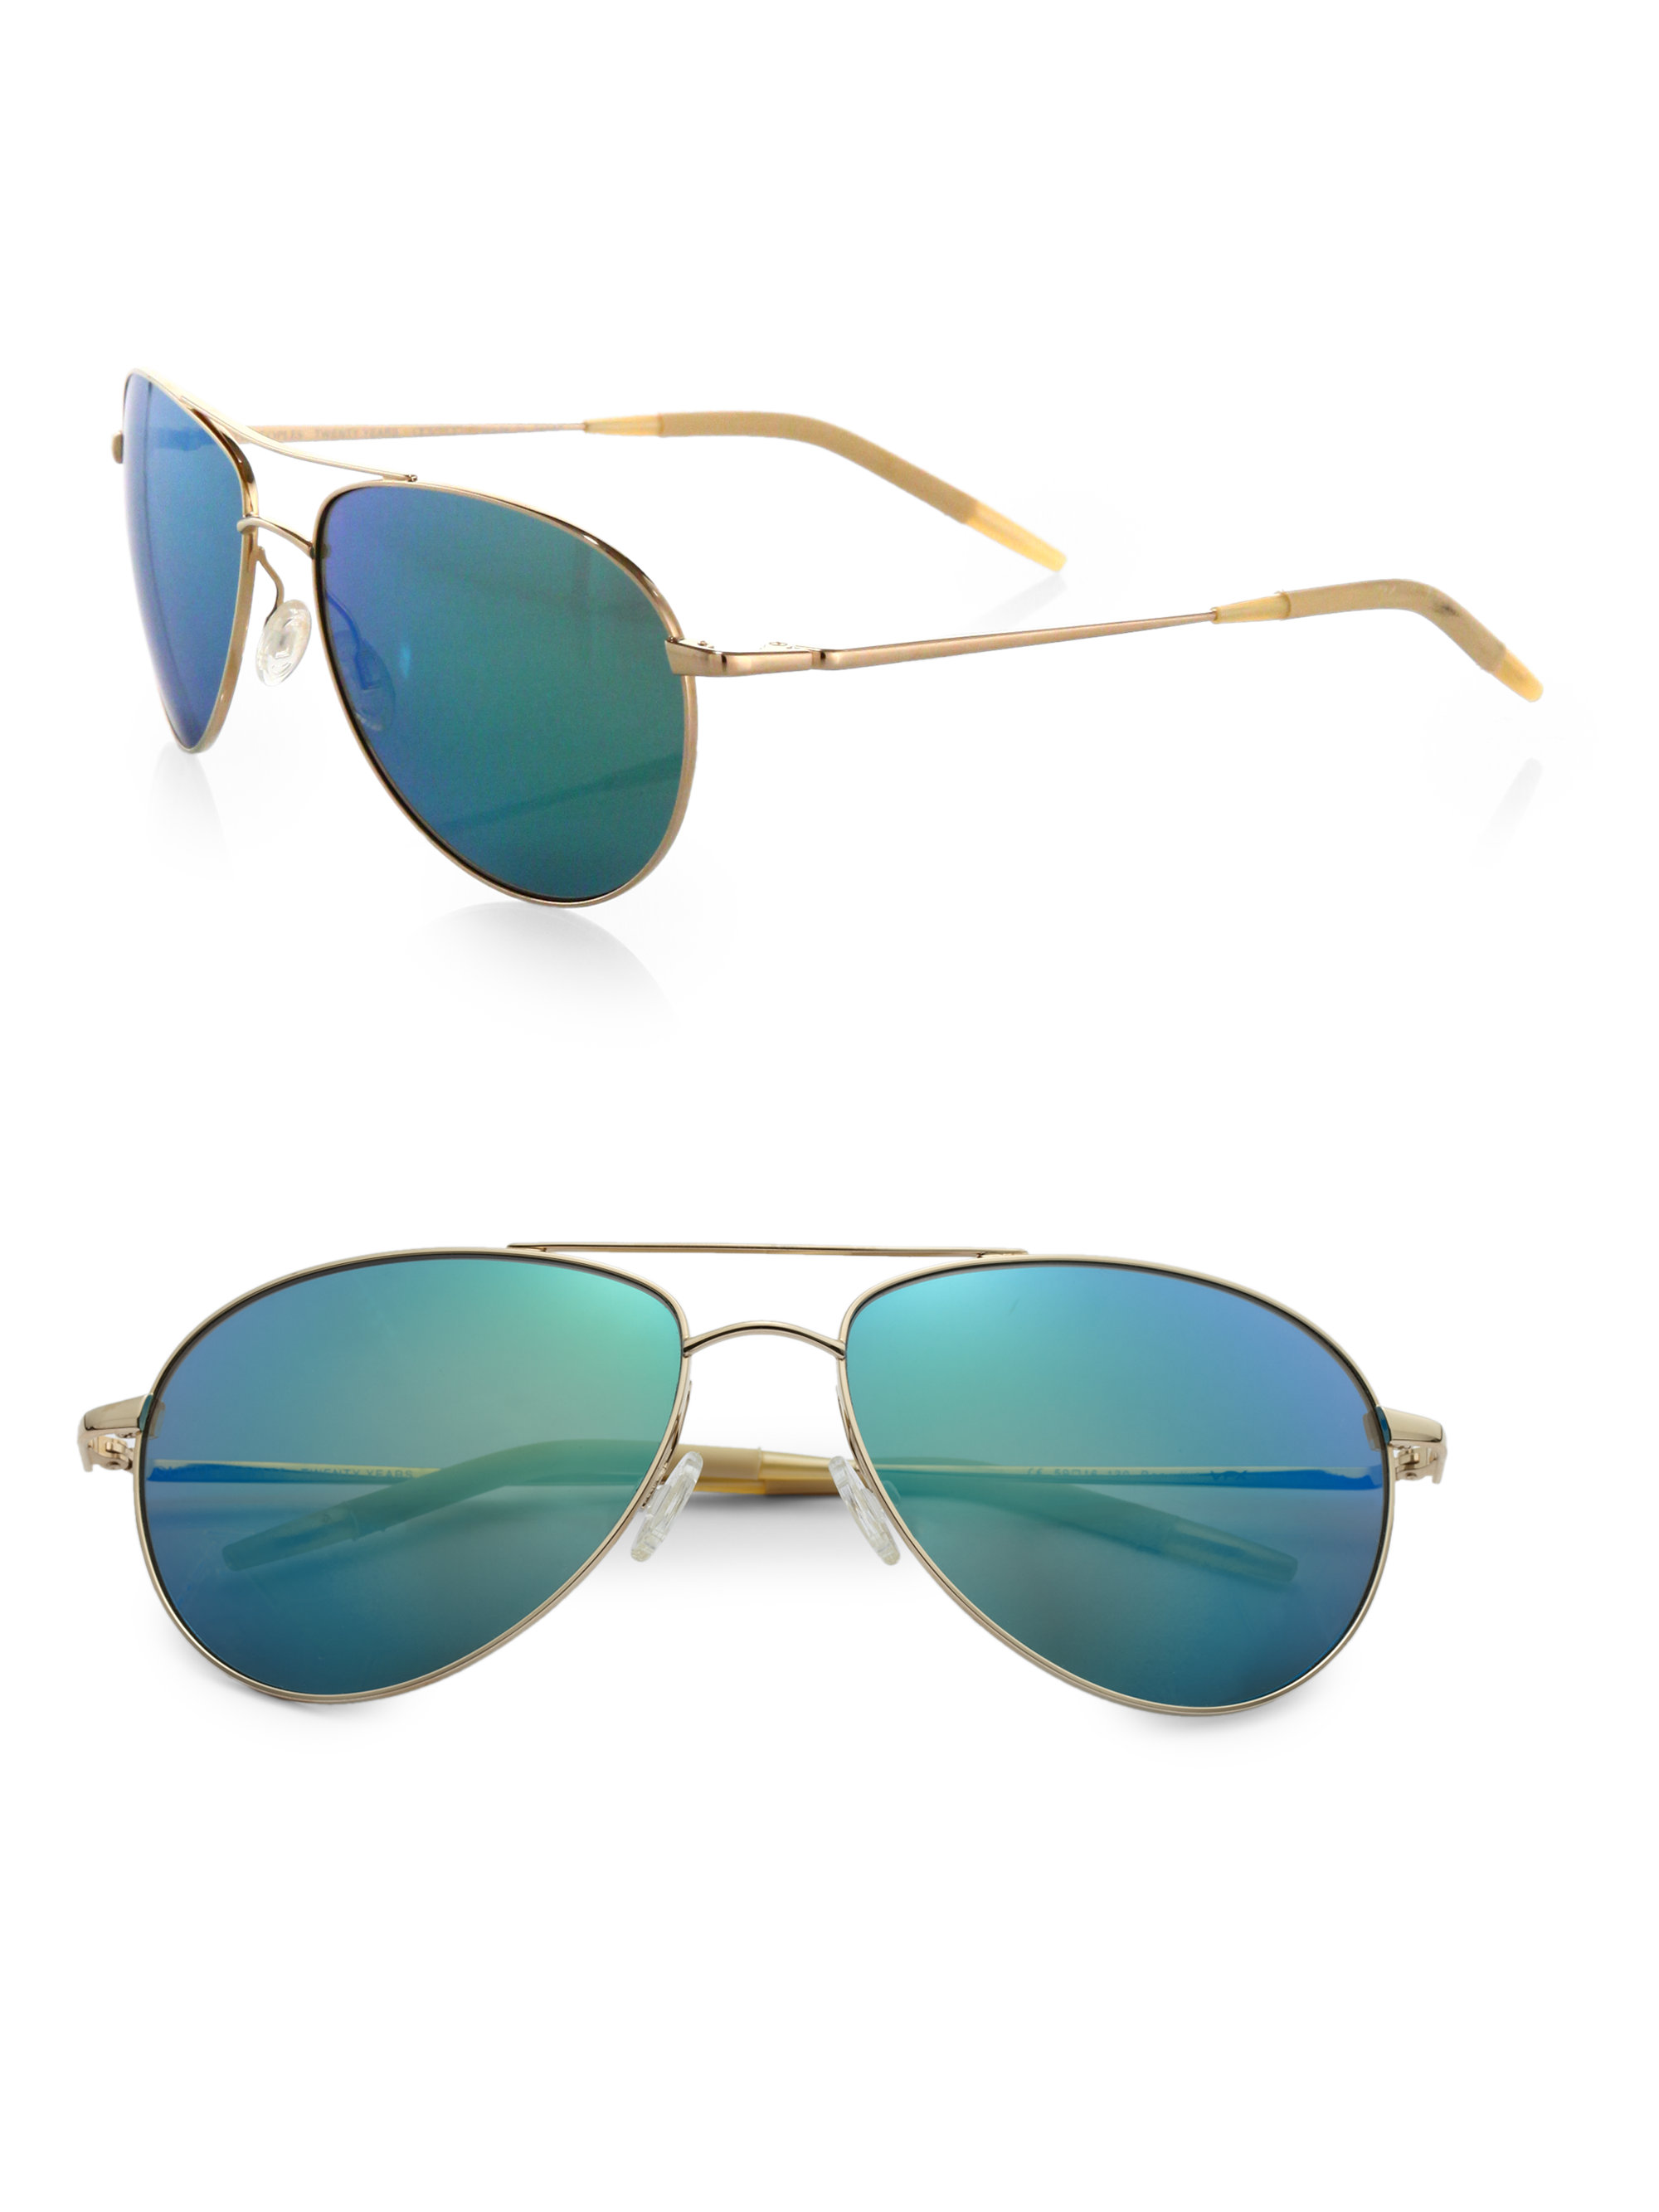 80996b62a51 Green Aviator Sunglasses Oliver Peoples « Heritage Malta